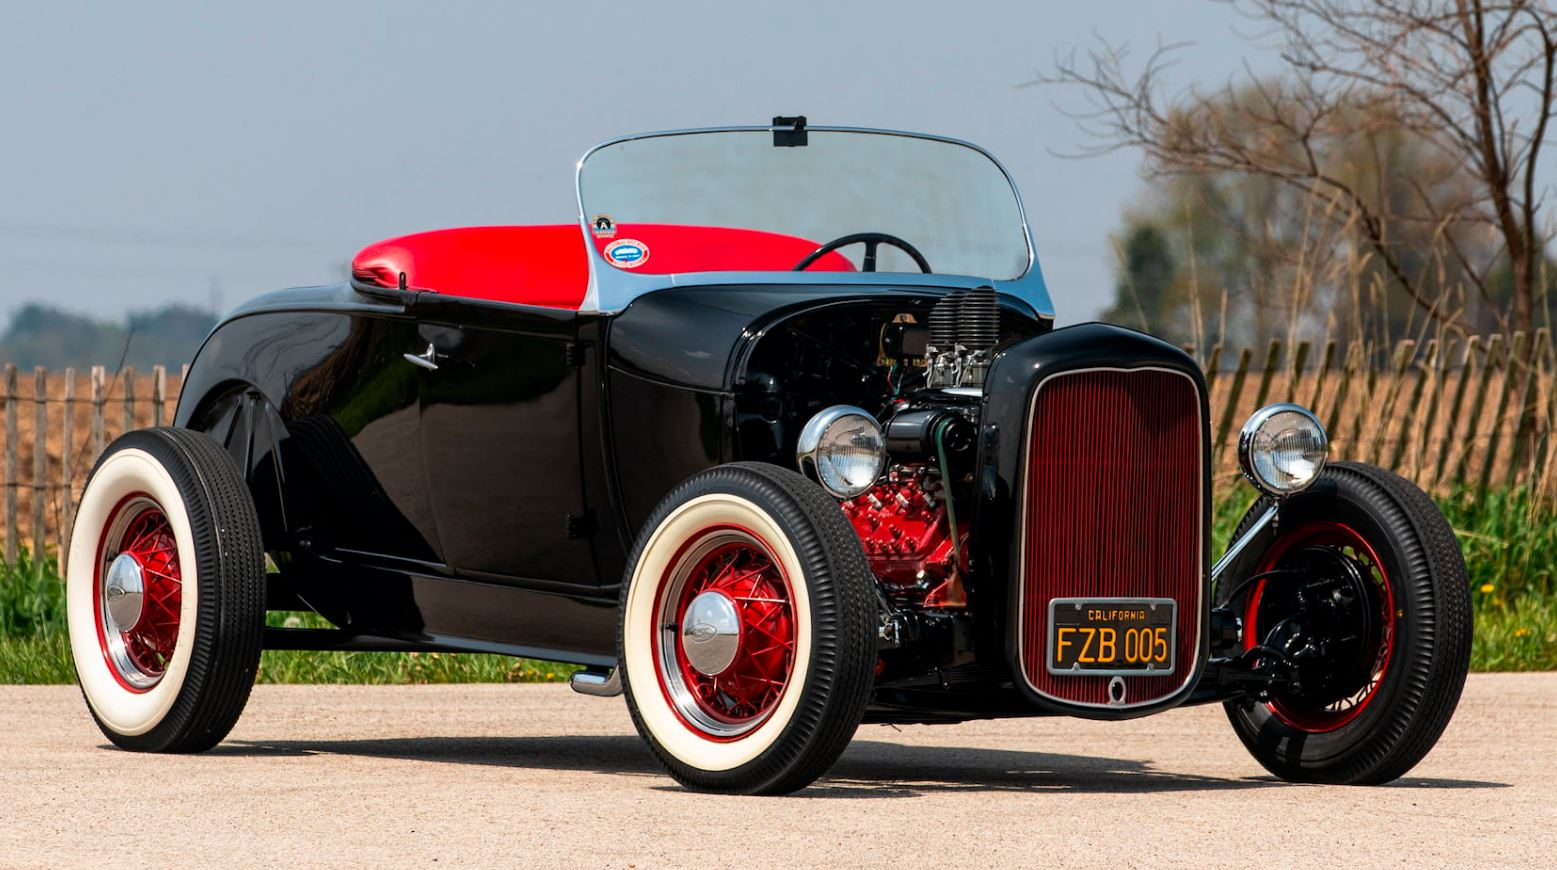 Ford Roadster Hot Rod That Elvis Presley Couldn't Have Is ...